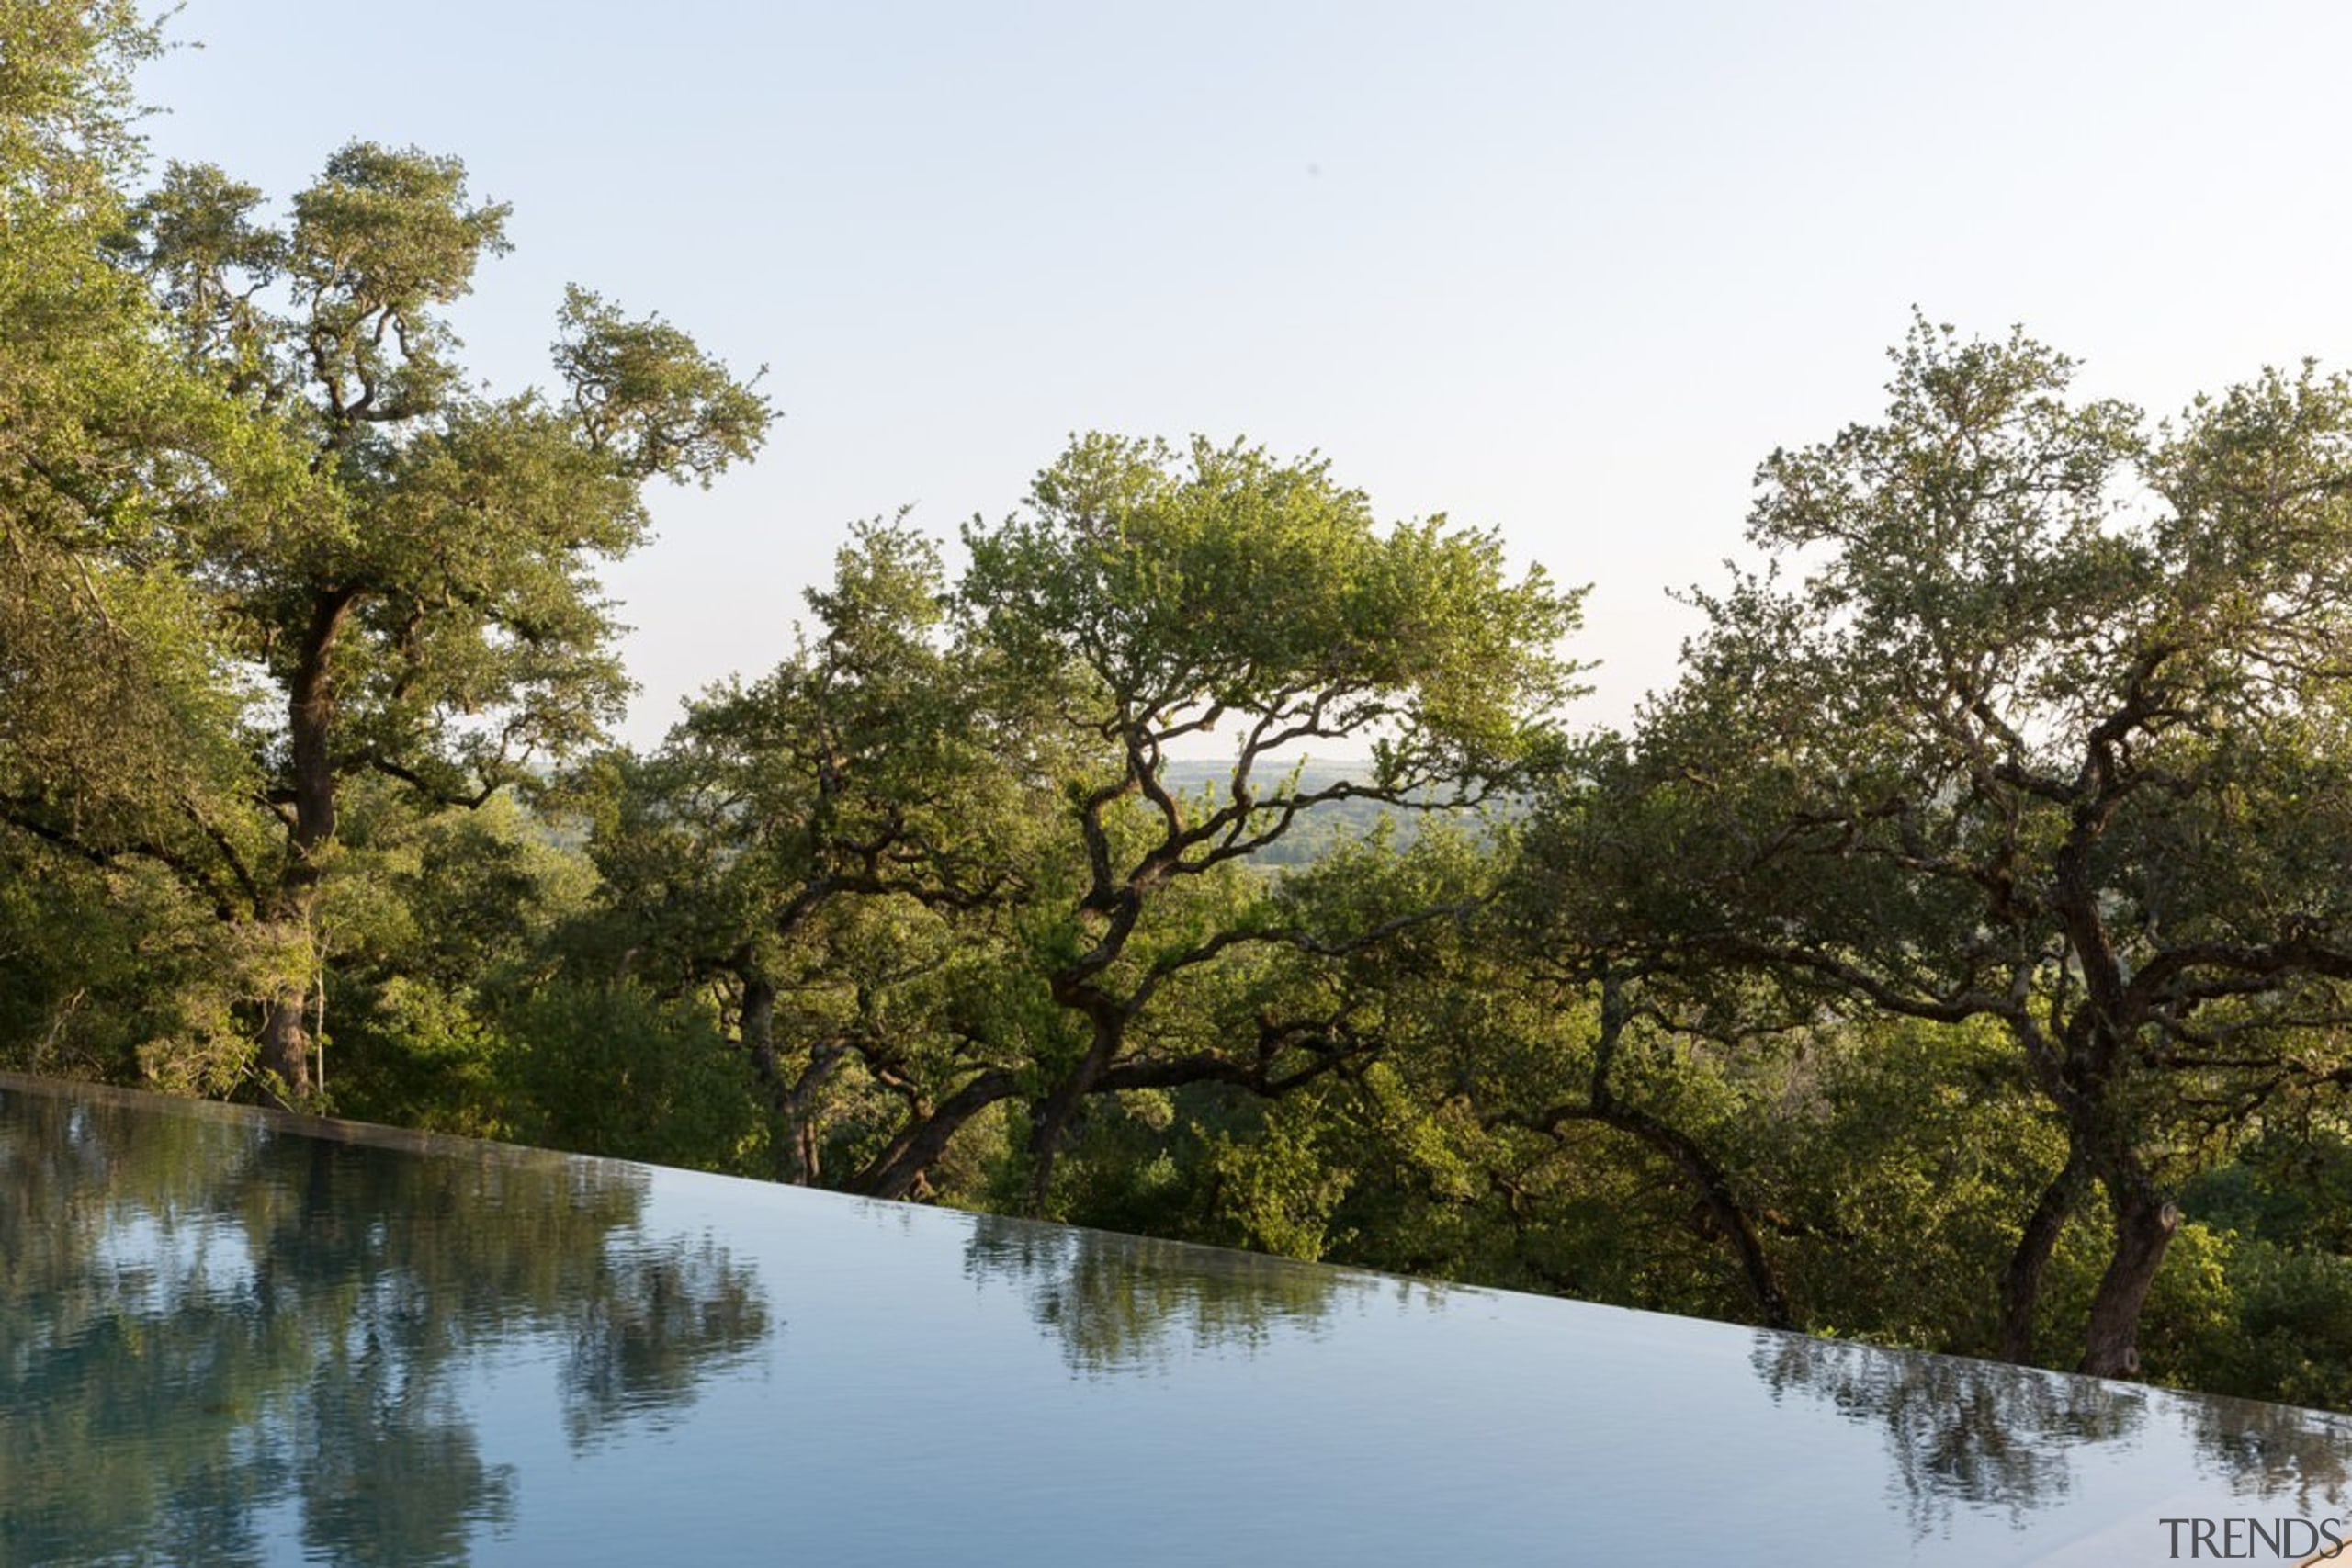 The infinity pool falls off the edge - bank, bayou, biome, branch, lake, leaf, nature, nature reserve, plant, pond, reflection, riparian forest, riparian zone, river, sky, tree, vegetation, water, waterway, wetland, brown, white